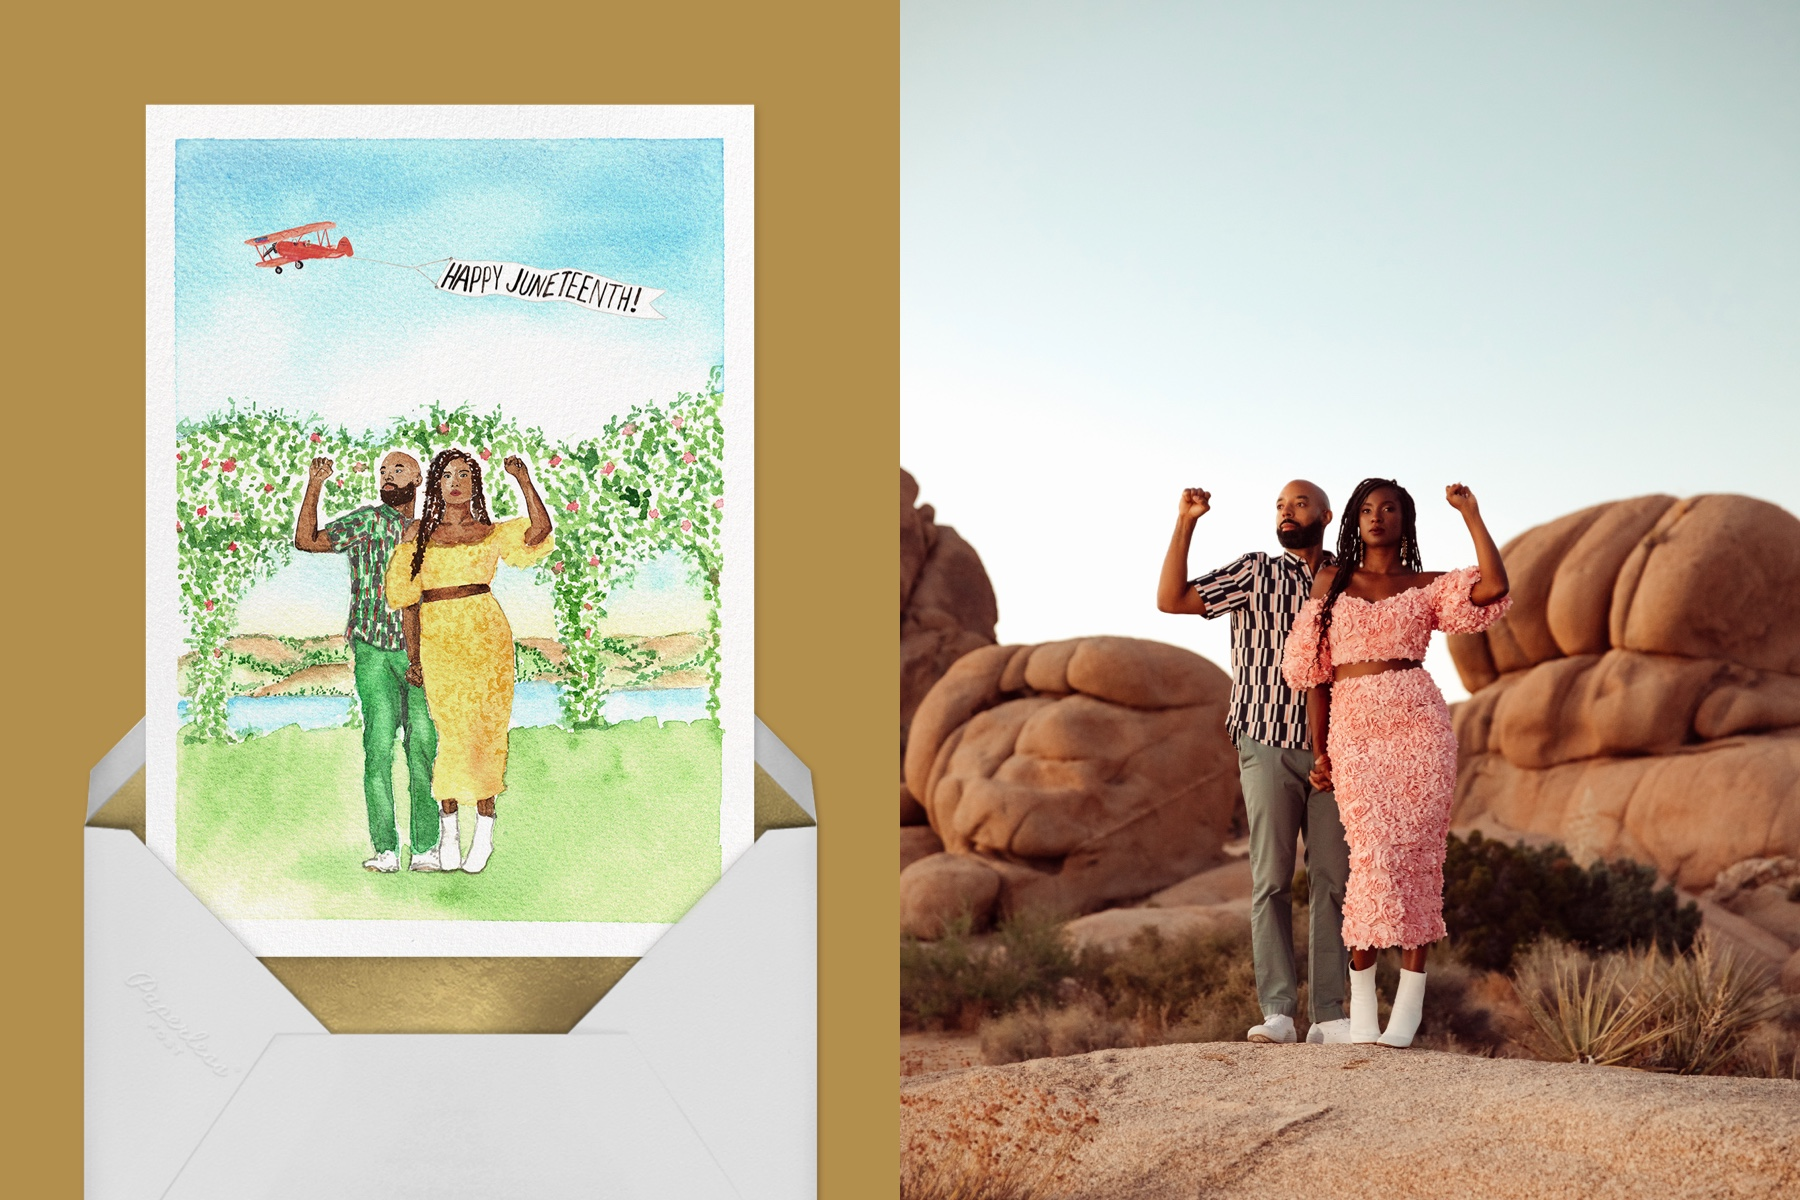 Left: Custom Juneteenth wedding invitation for Safiyah Jihan Miller by Paperless Post   Right: Inspiration photo of Safiya Jihan Miller and her fiance surrounded by rocks.